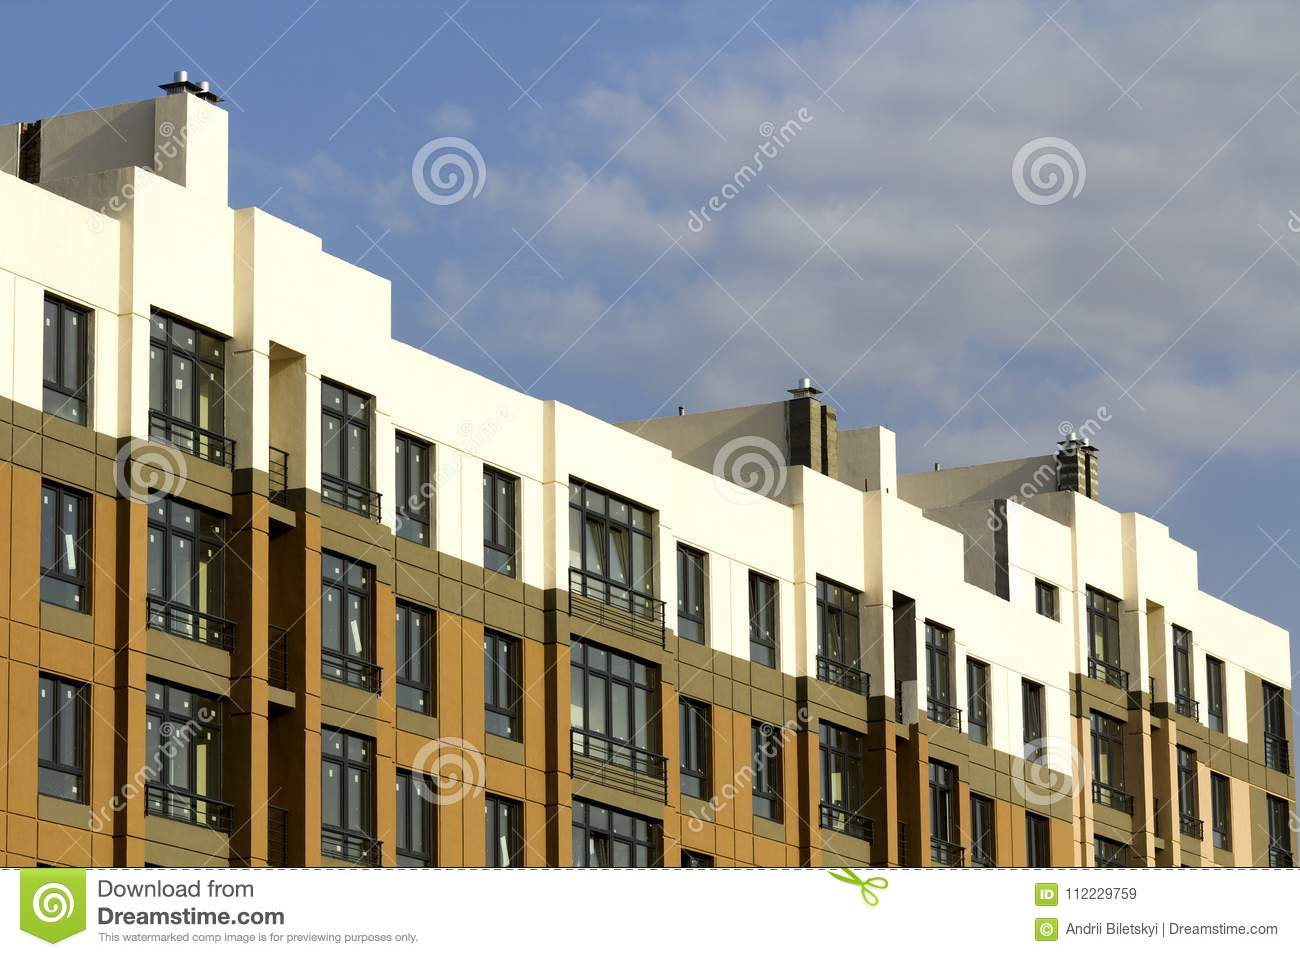 Condominium or modern apartment building with symmetrical architecture in the city downtown. Real estate development and urban gro